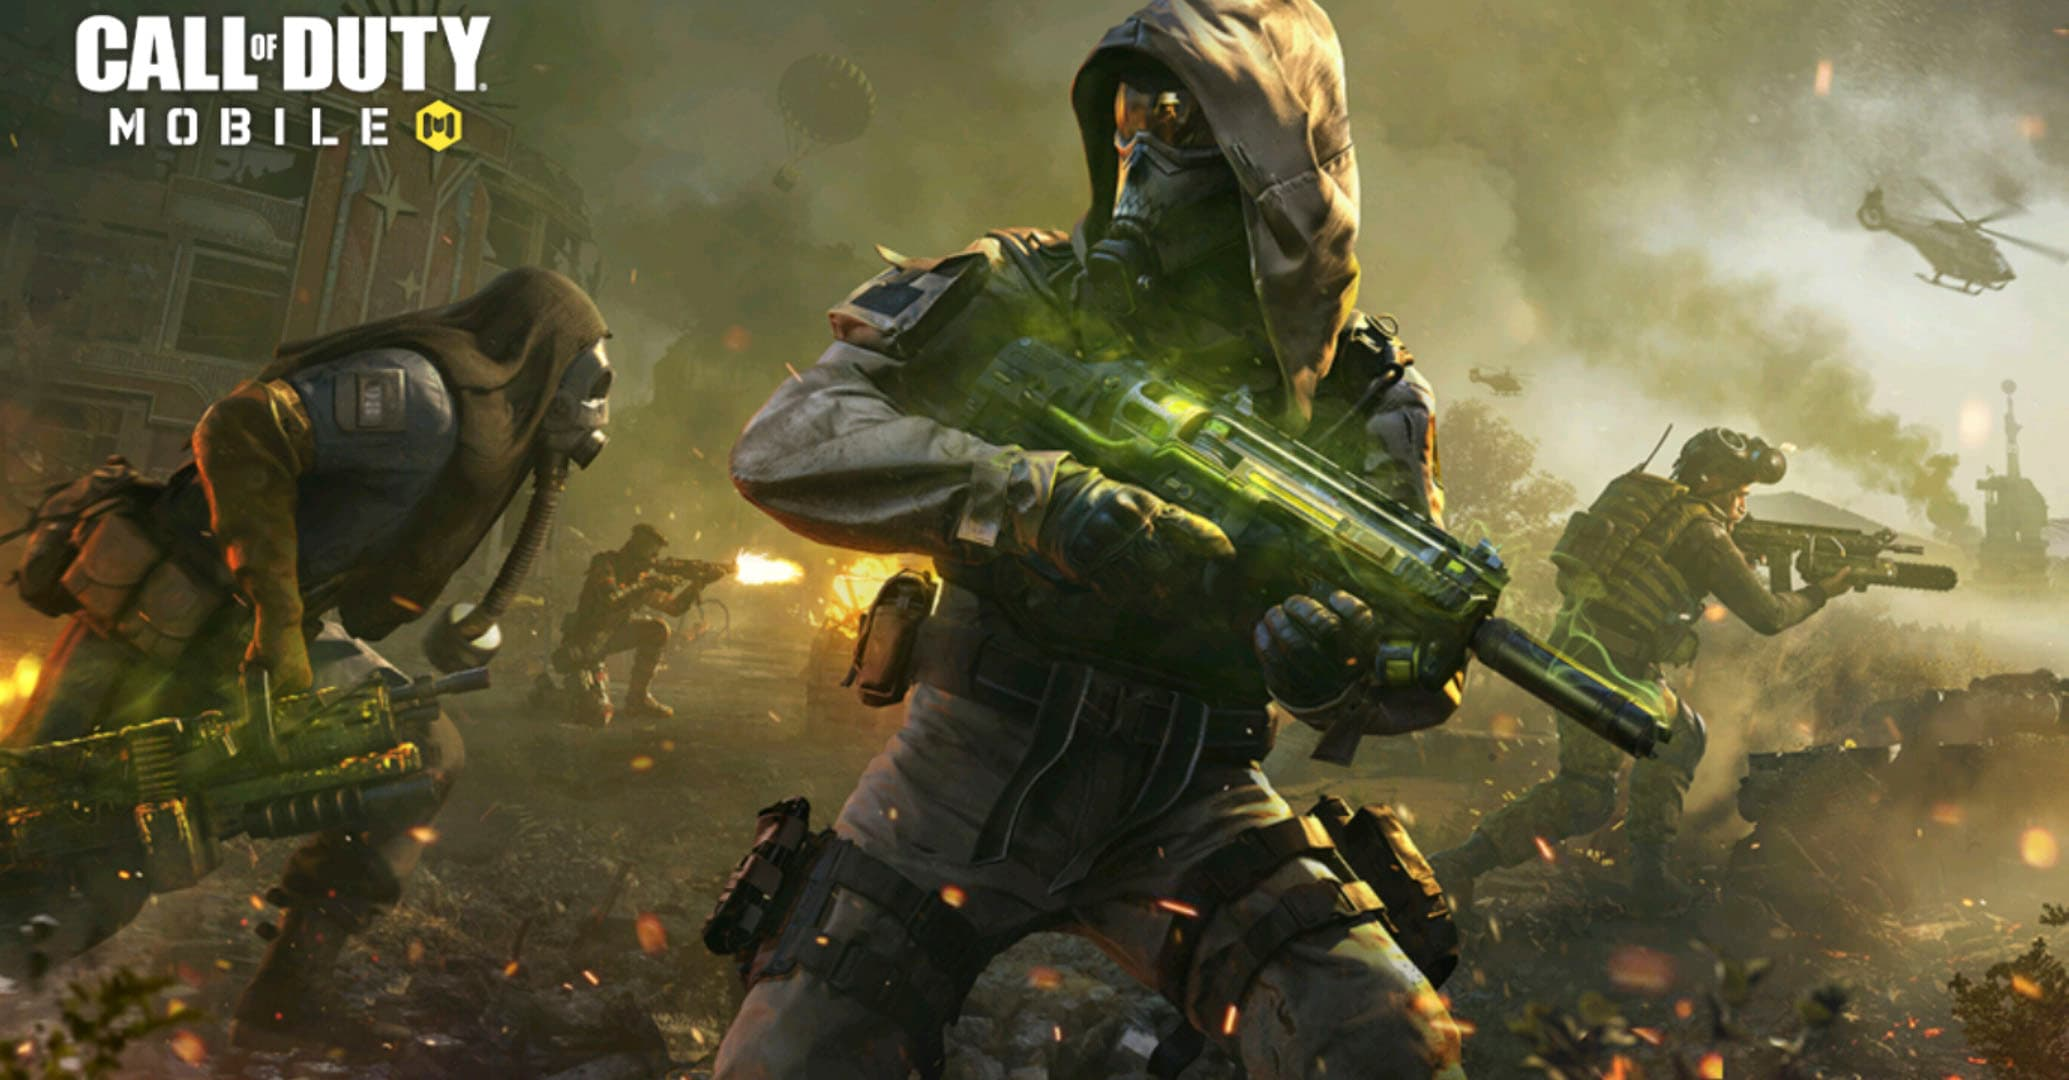 call of duty mobile supera las 250 descargas de su app